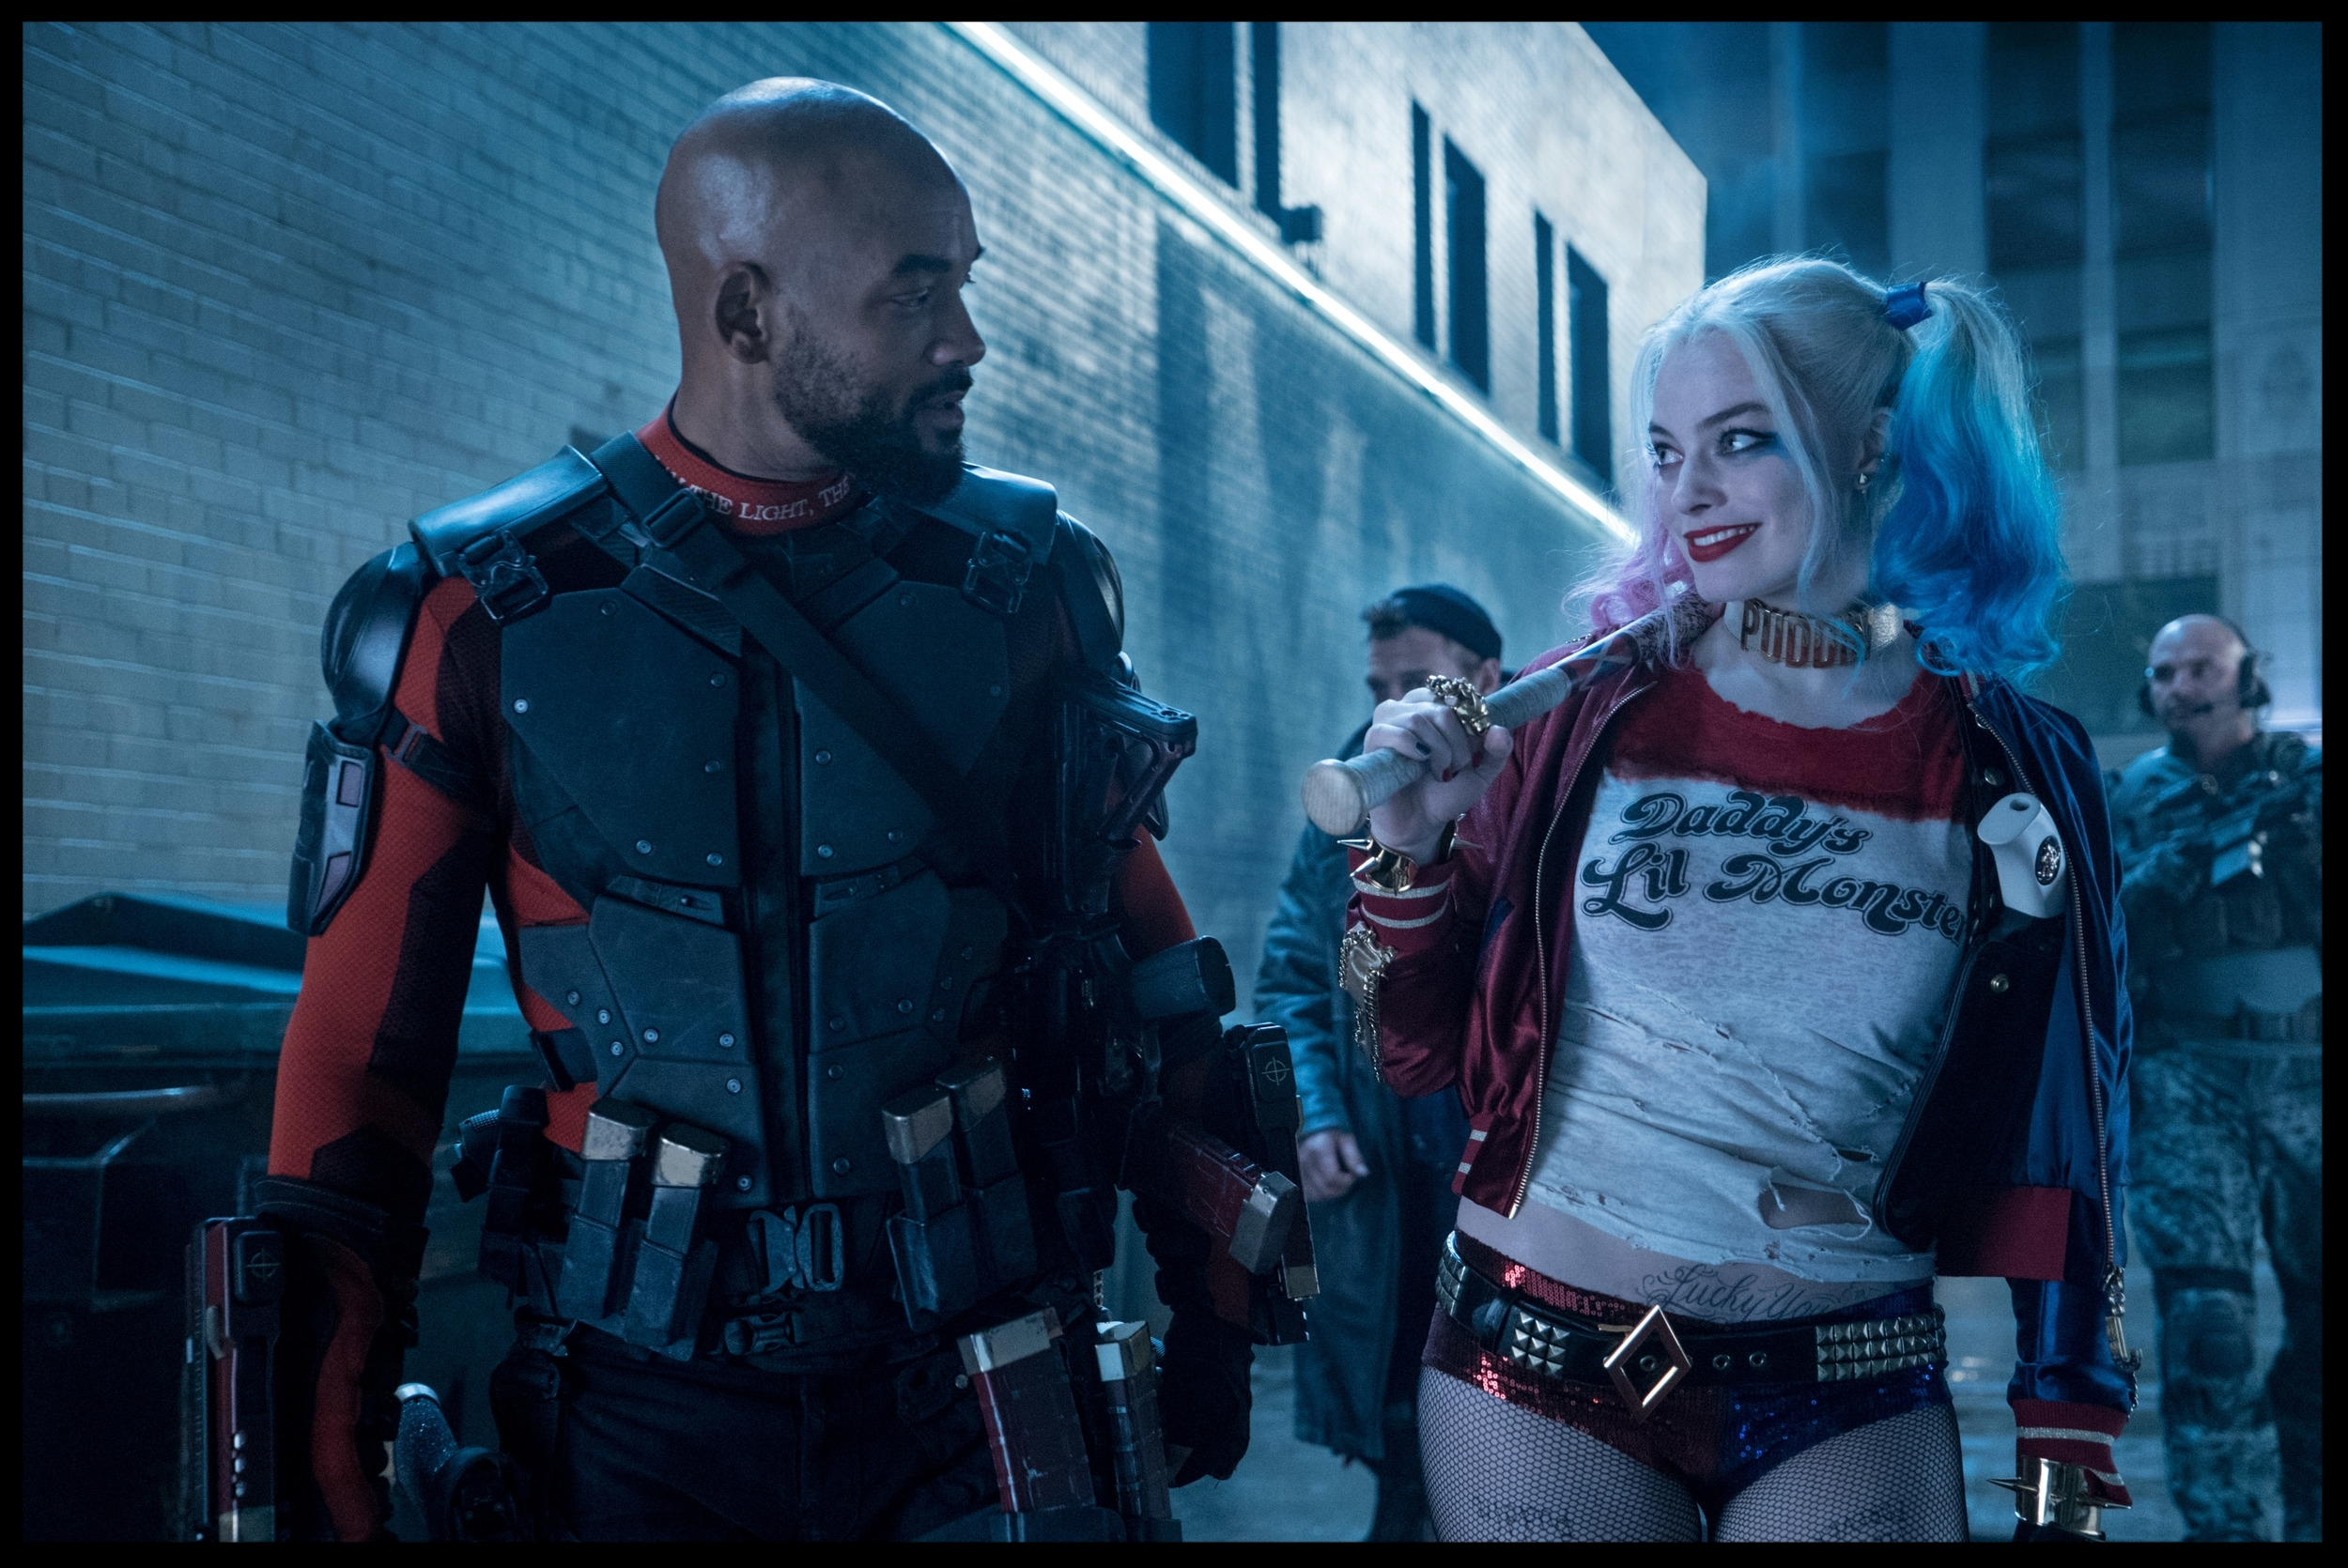 Deadshot ( Will Smith ) and Harley Quinn ( Margot Robbie ) actually manage to forge a real, and tender, friendship.